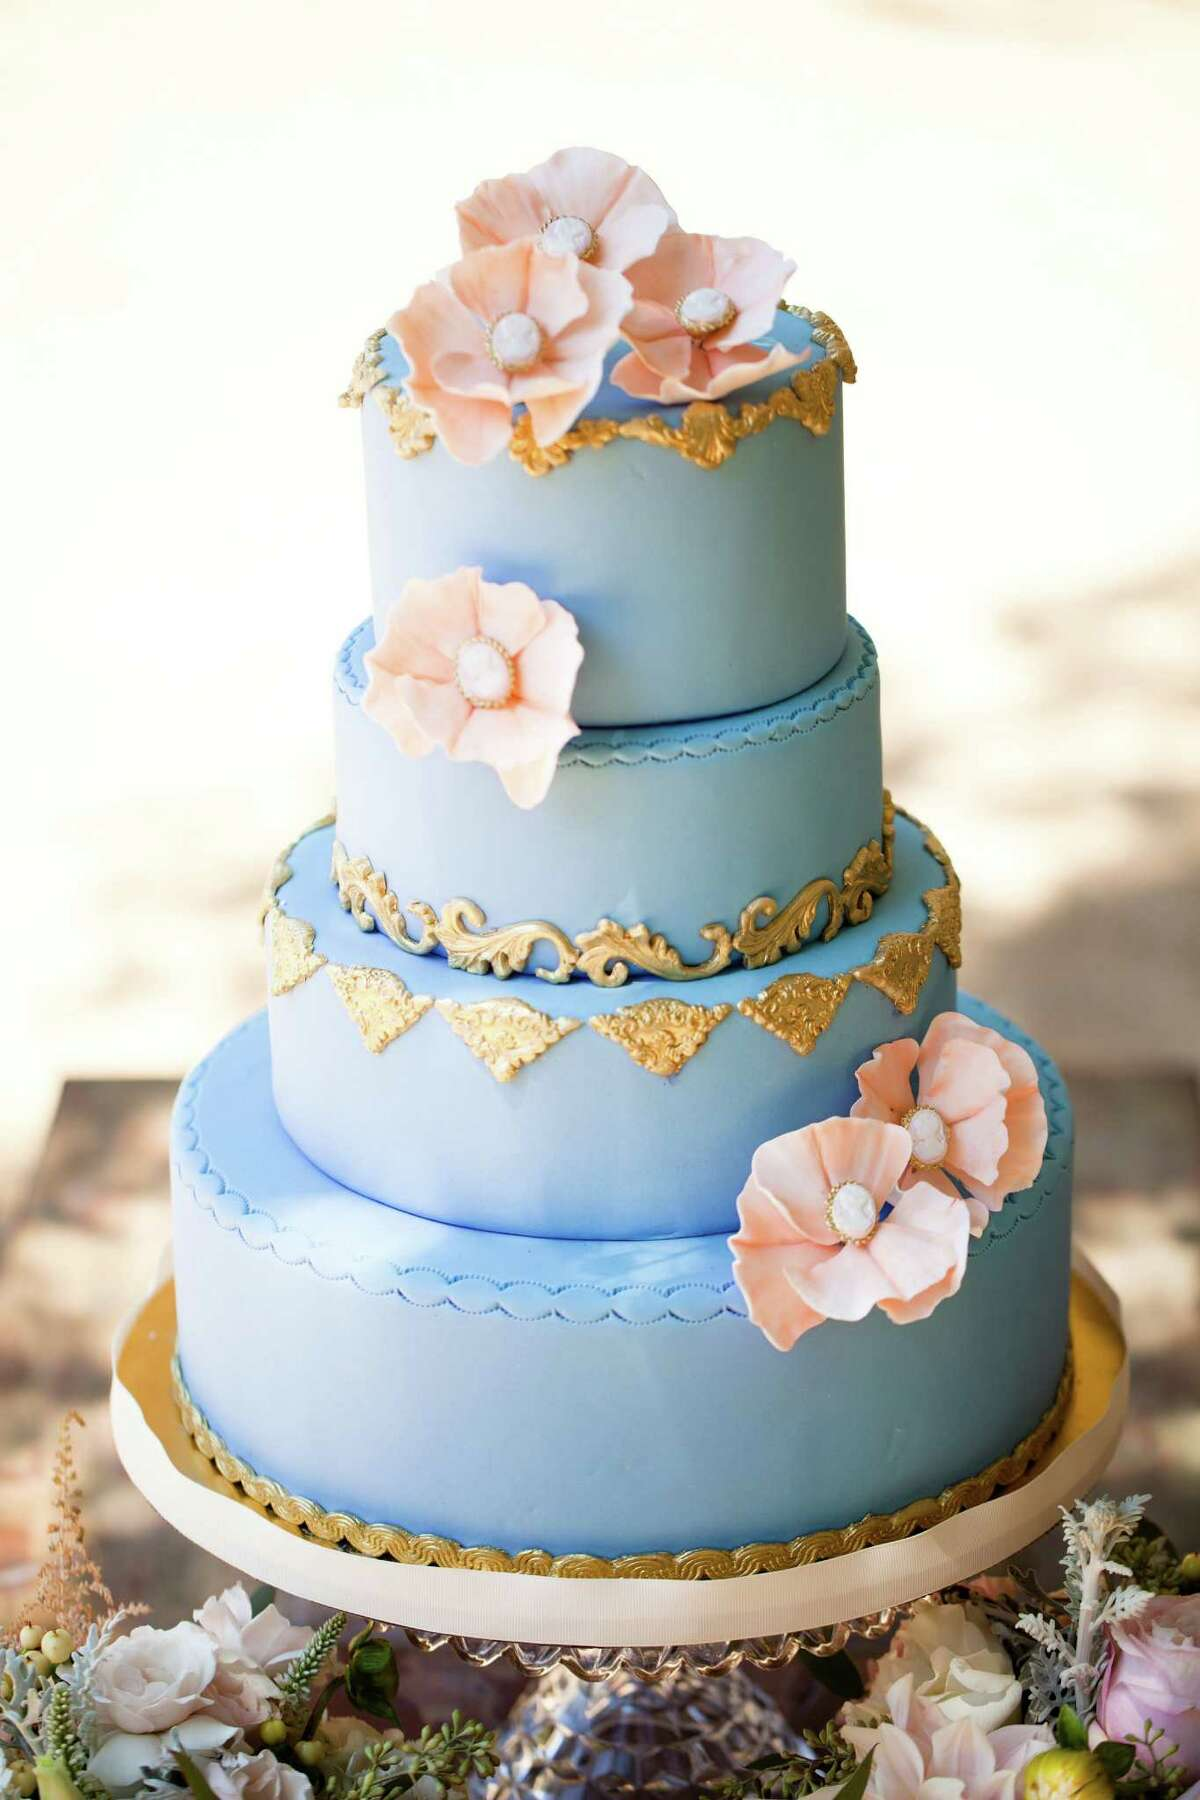 Creative cakes Not all brides and grooms are sweet on white cake with white frosting. Alison Okabayashi, owner of Pretty Please Bakeshop in San Francisco, says she's incorporating fun flavors like pistachio lime, Snickers, and peanut butter and jelly into wedding cakes - and the color palette is broadening as well, with dark brown, gold and black challenging white fondant.